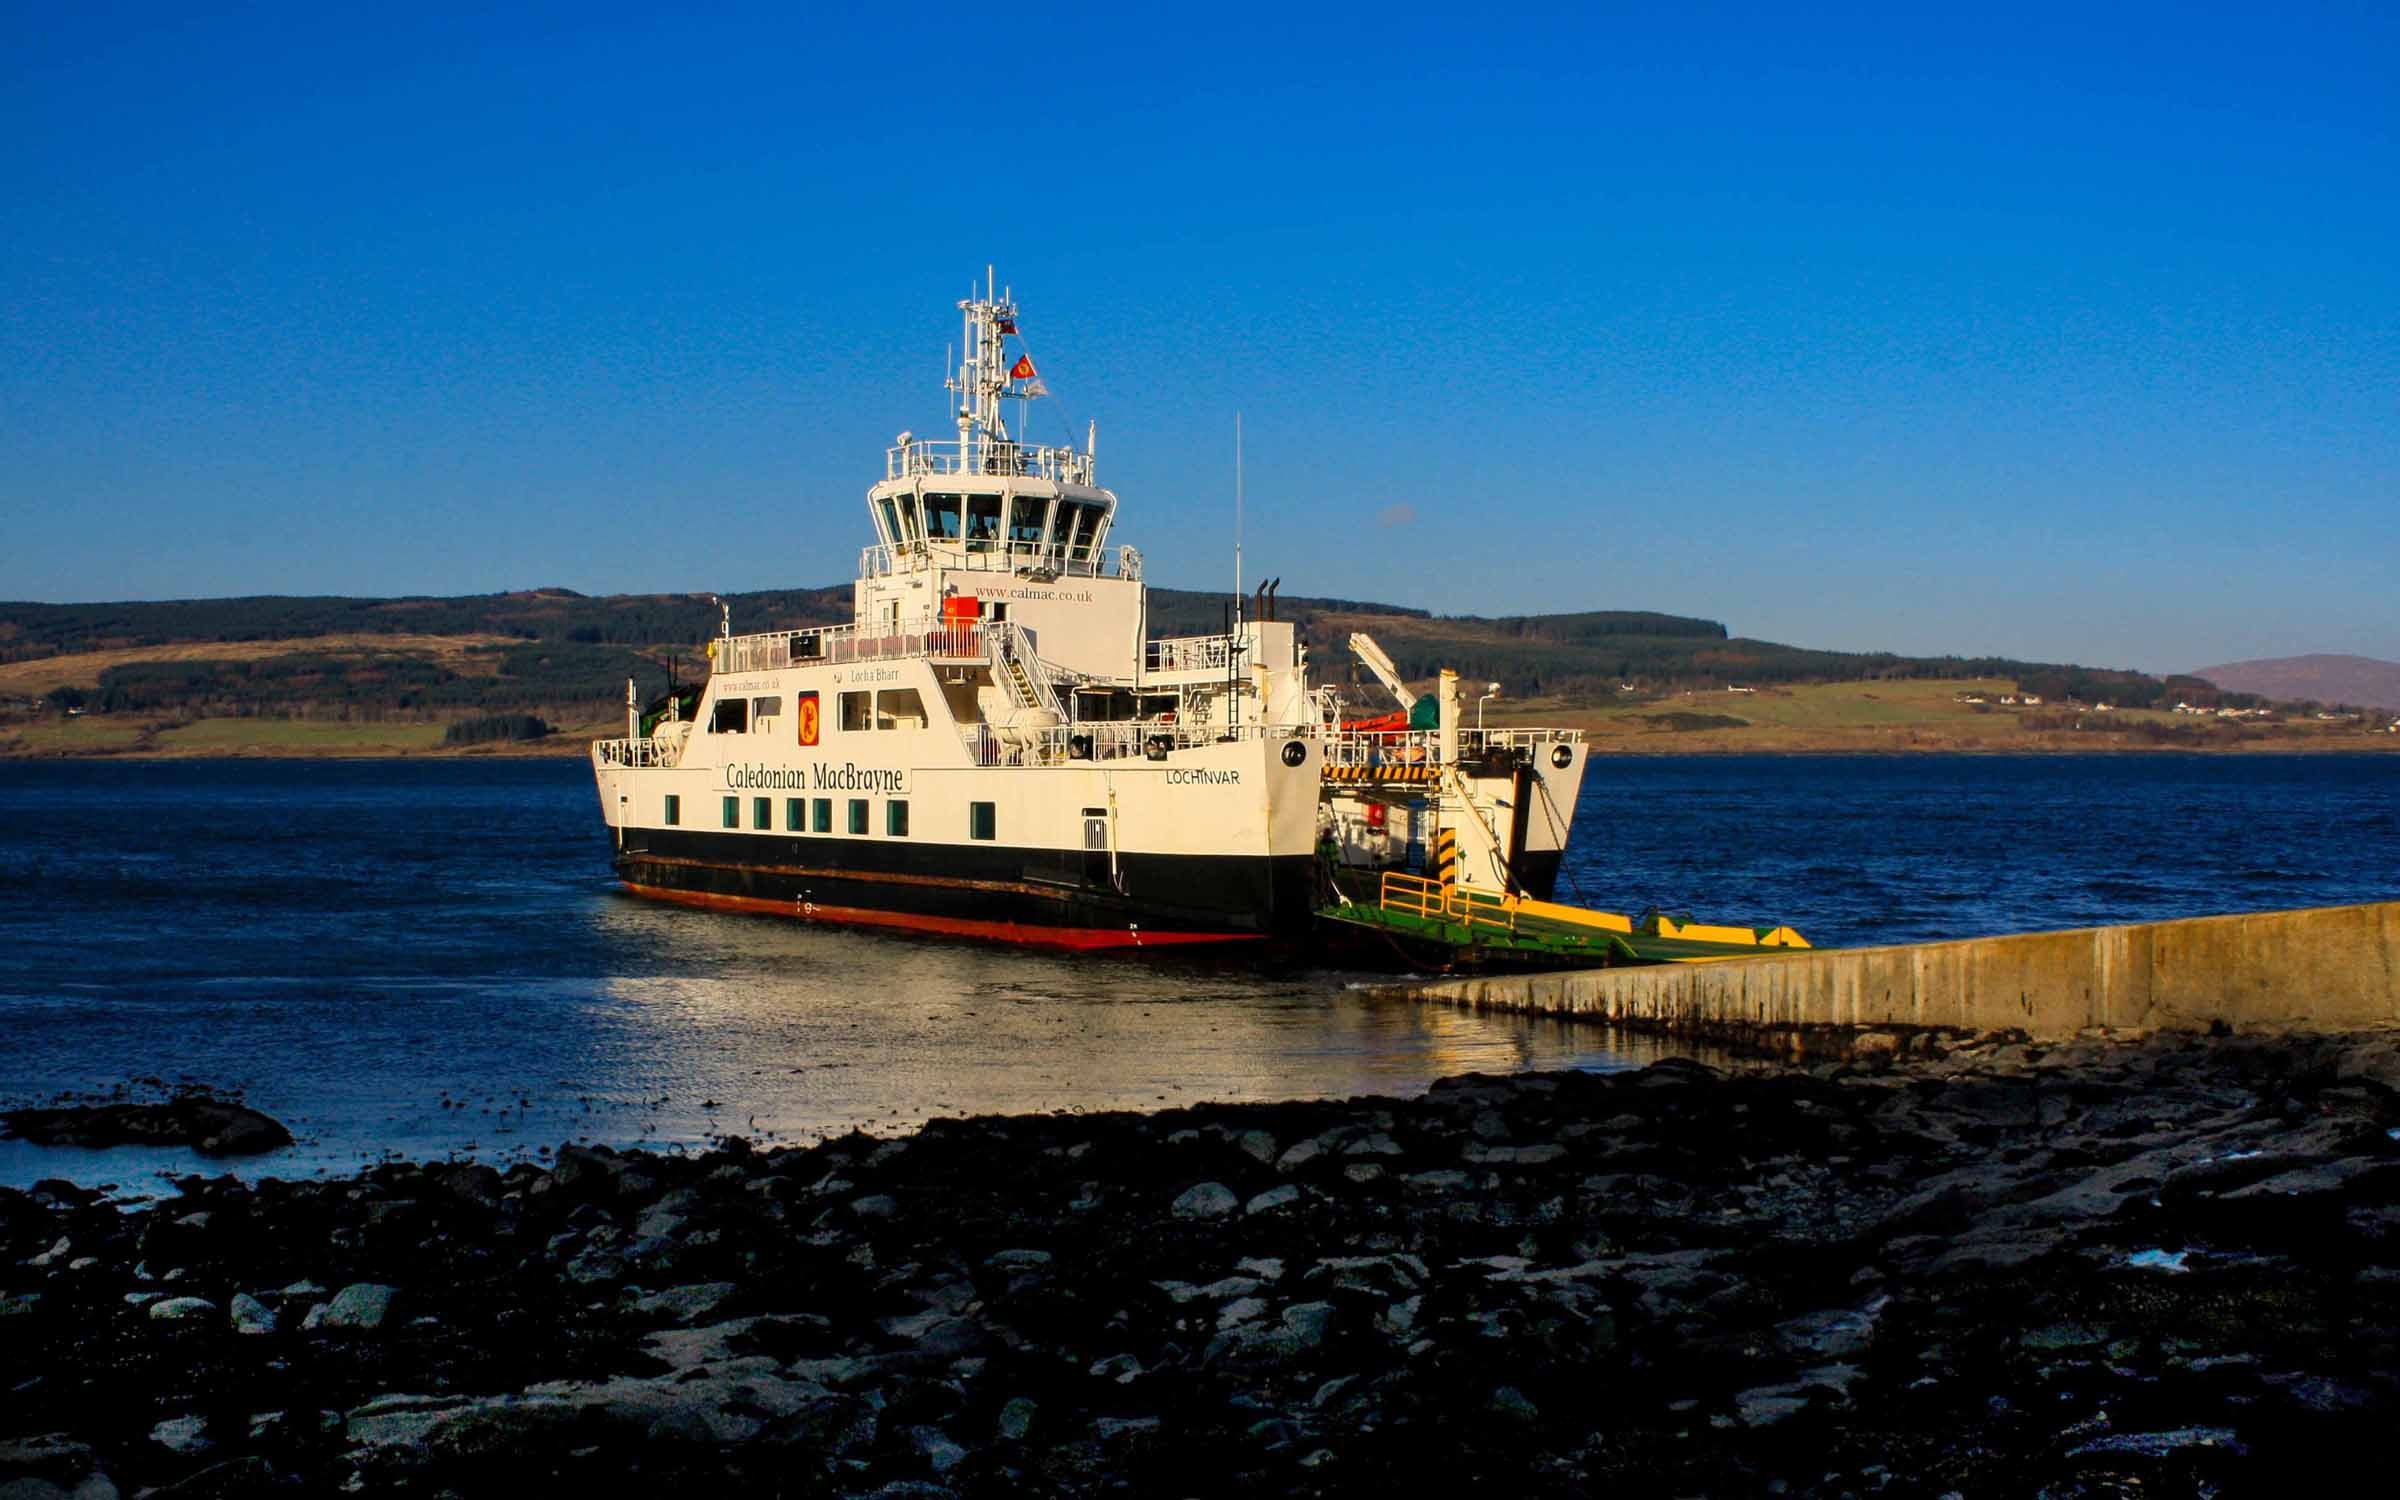 Lochinvar at Fishnish (Ships of CalMac)